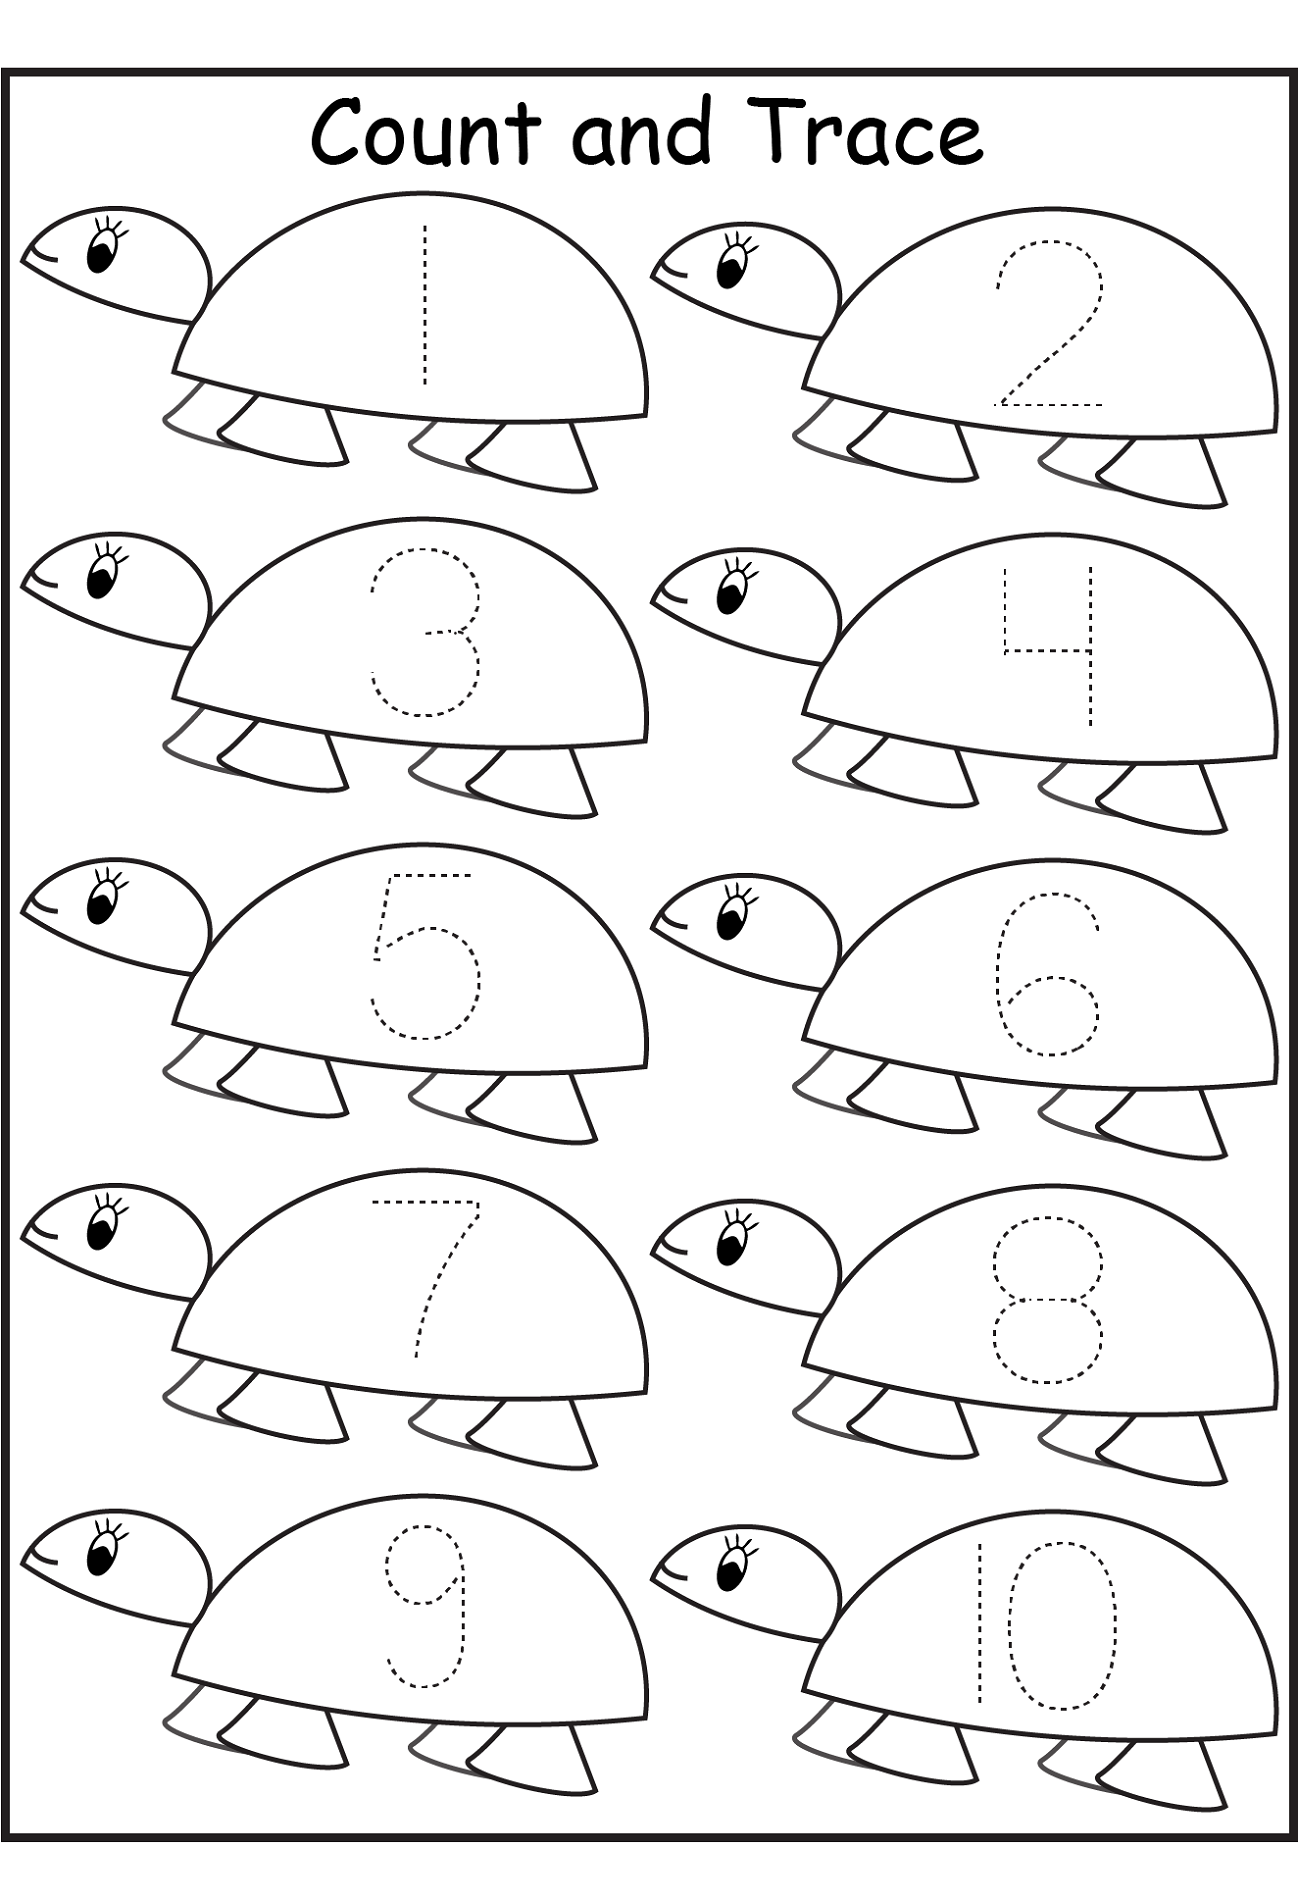 Worksheets Pre K Worksheets pre k worksheets number activity shelter numbers tracing